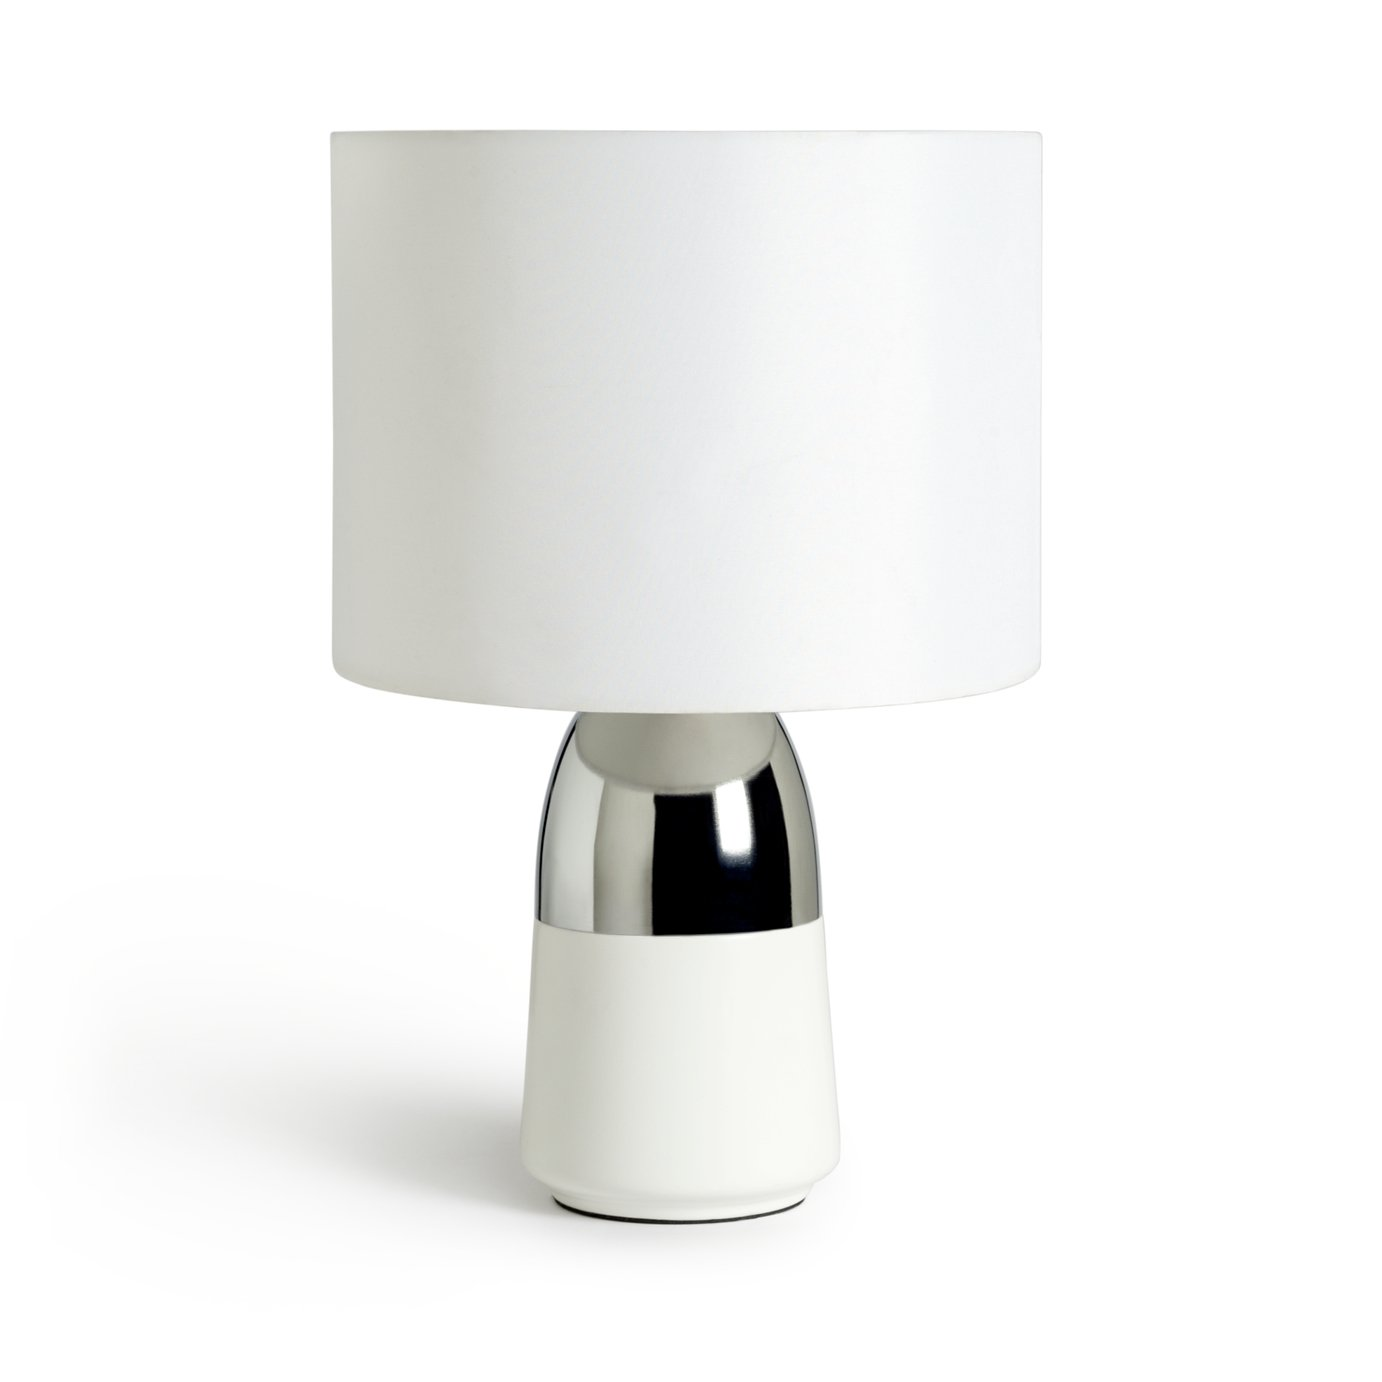 Argos Home - Duno Touch - Table Lamp - White & Chrome from Argos Home